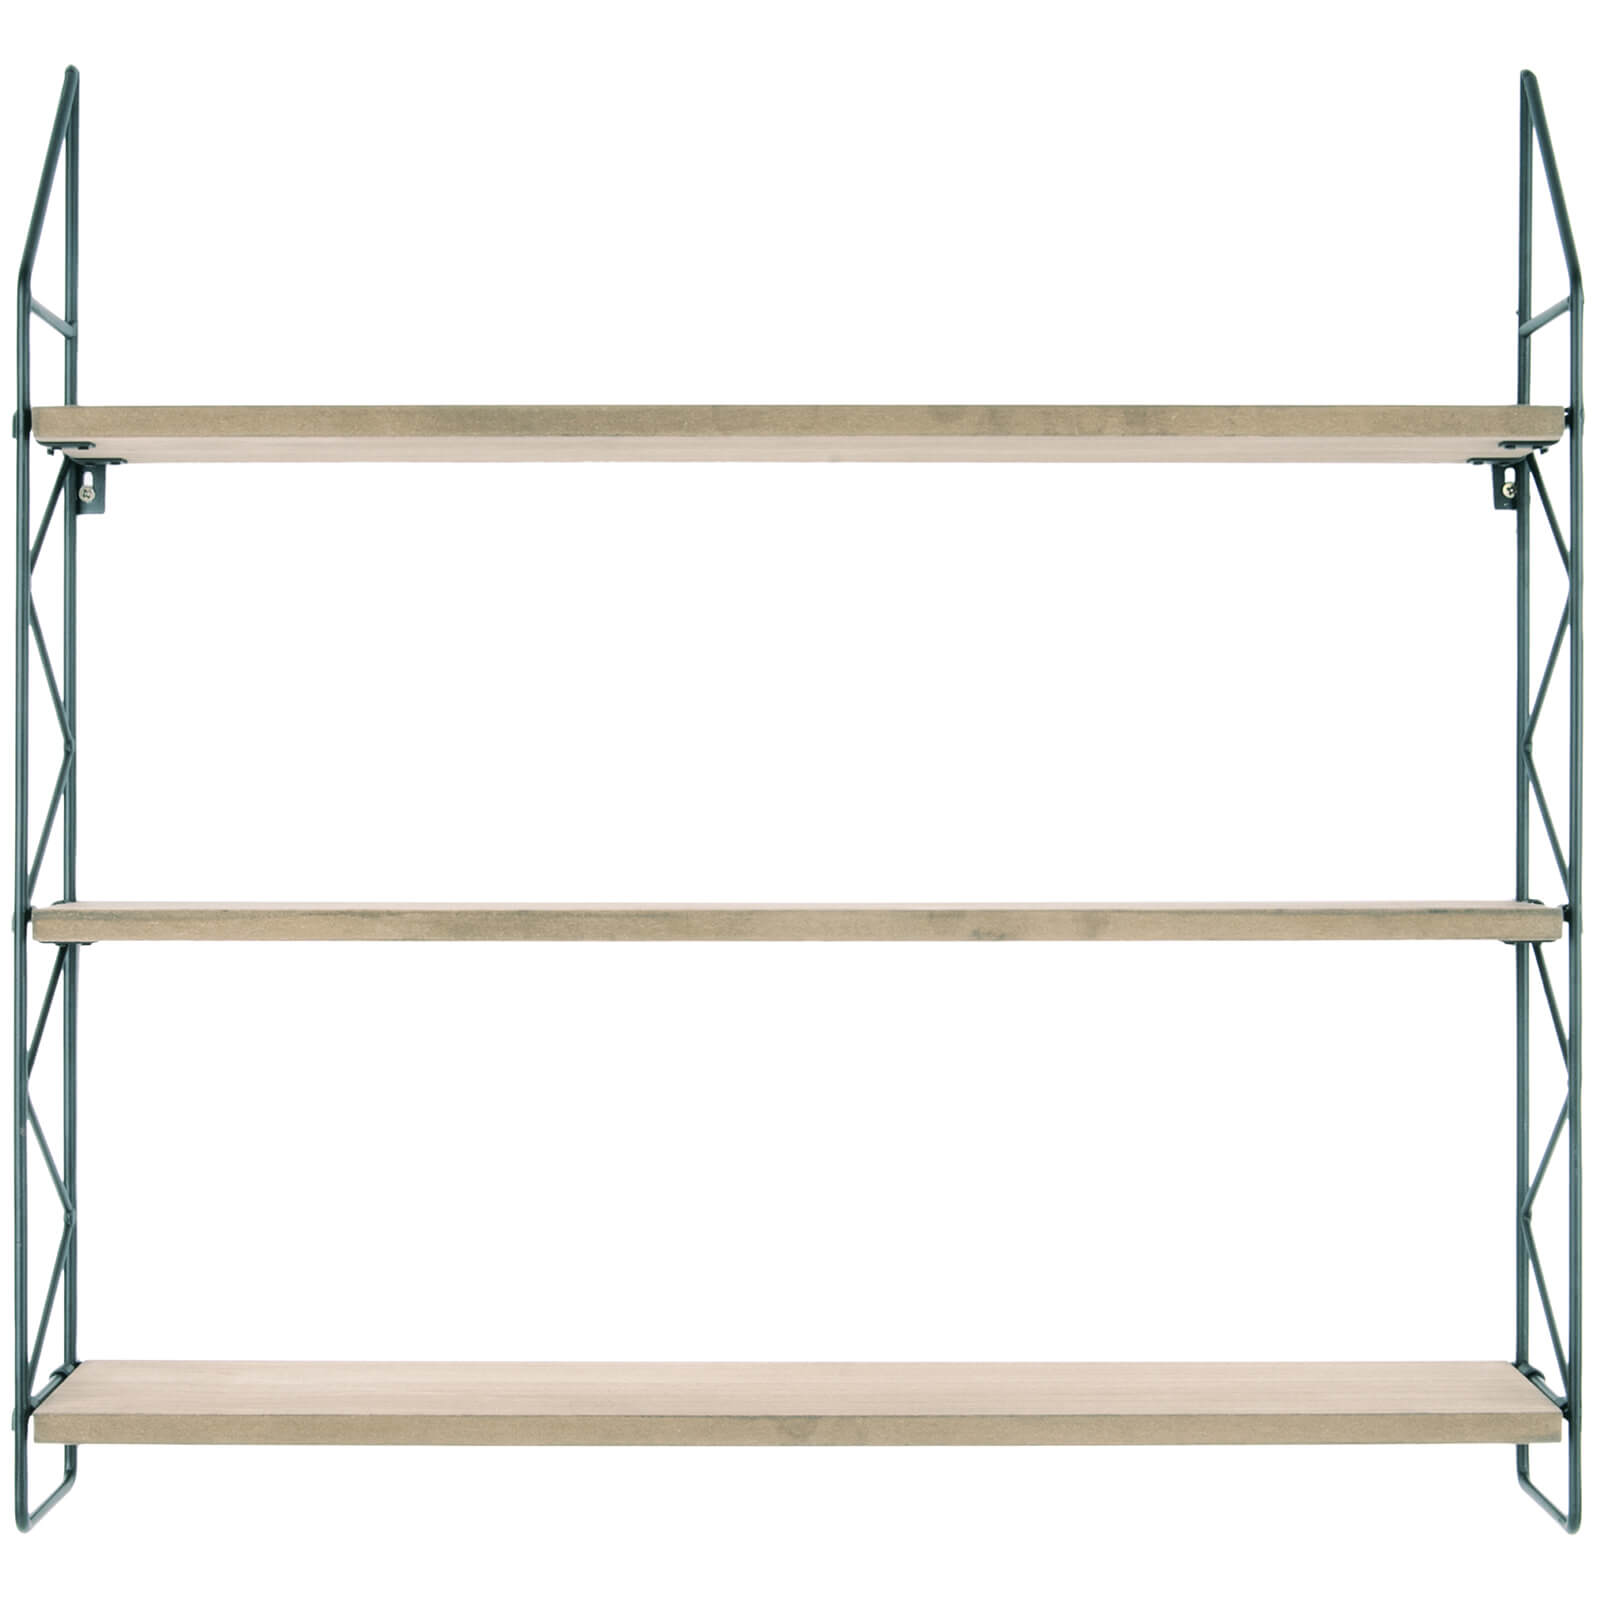 Present Time Zig Zag Wall Rack - Black with Wooden Shelves